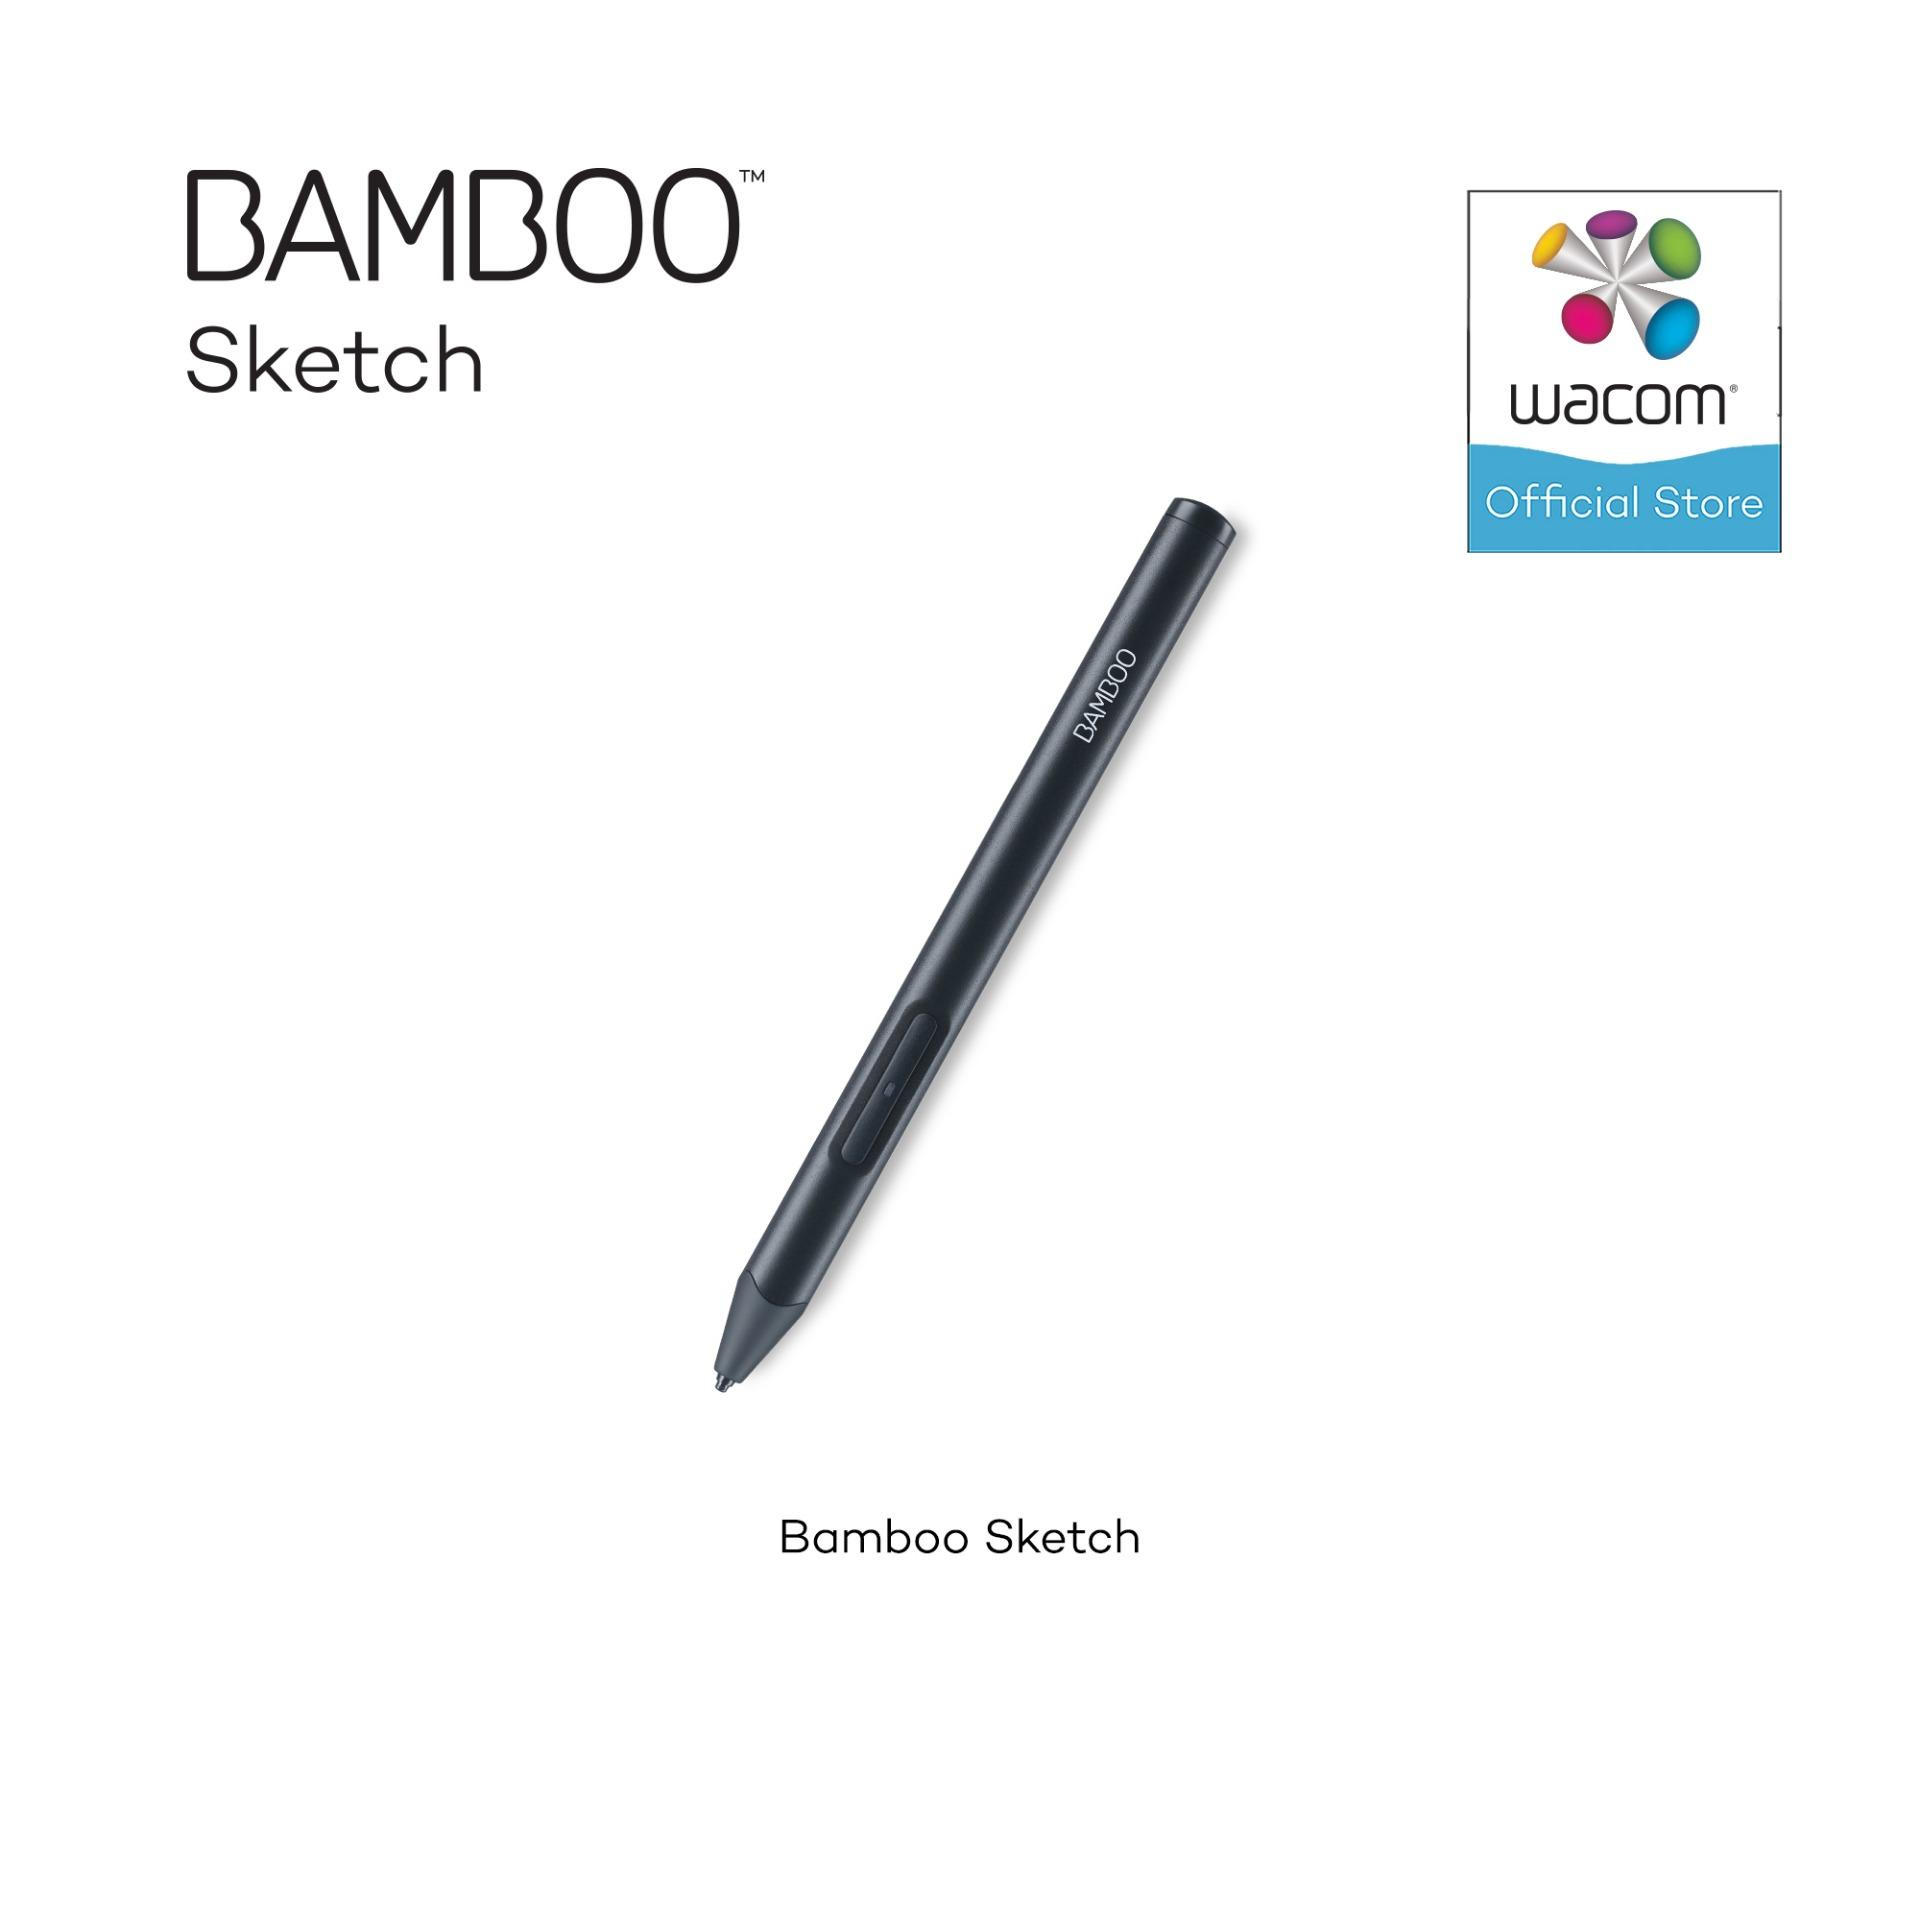 Bamboo Sketch Wacom Stylus (cs-610p) Optimized For Iphone Ipad By Wacom Official Store.